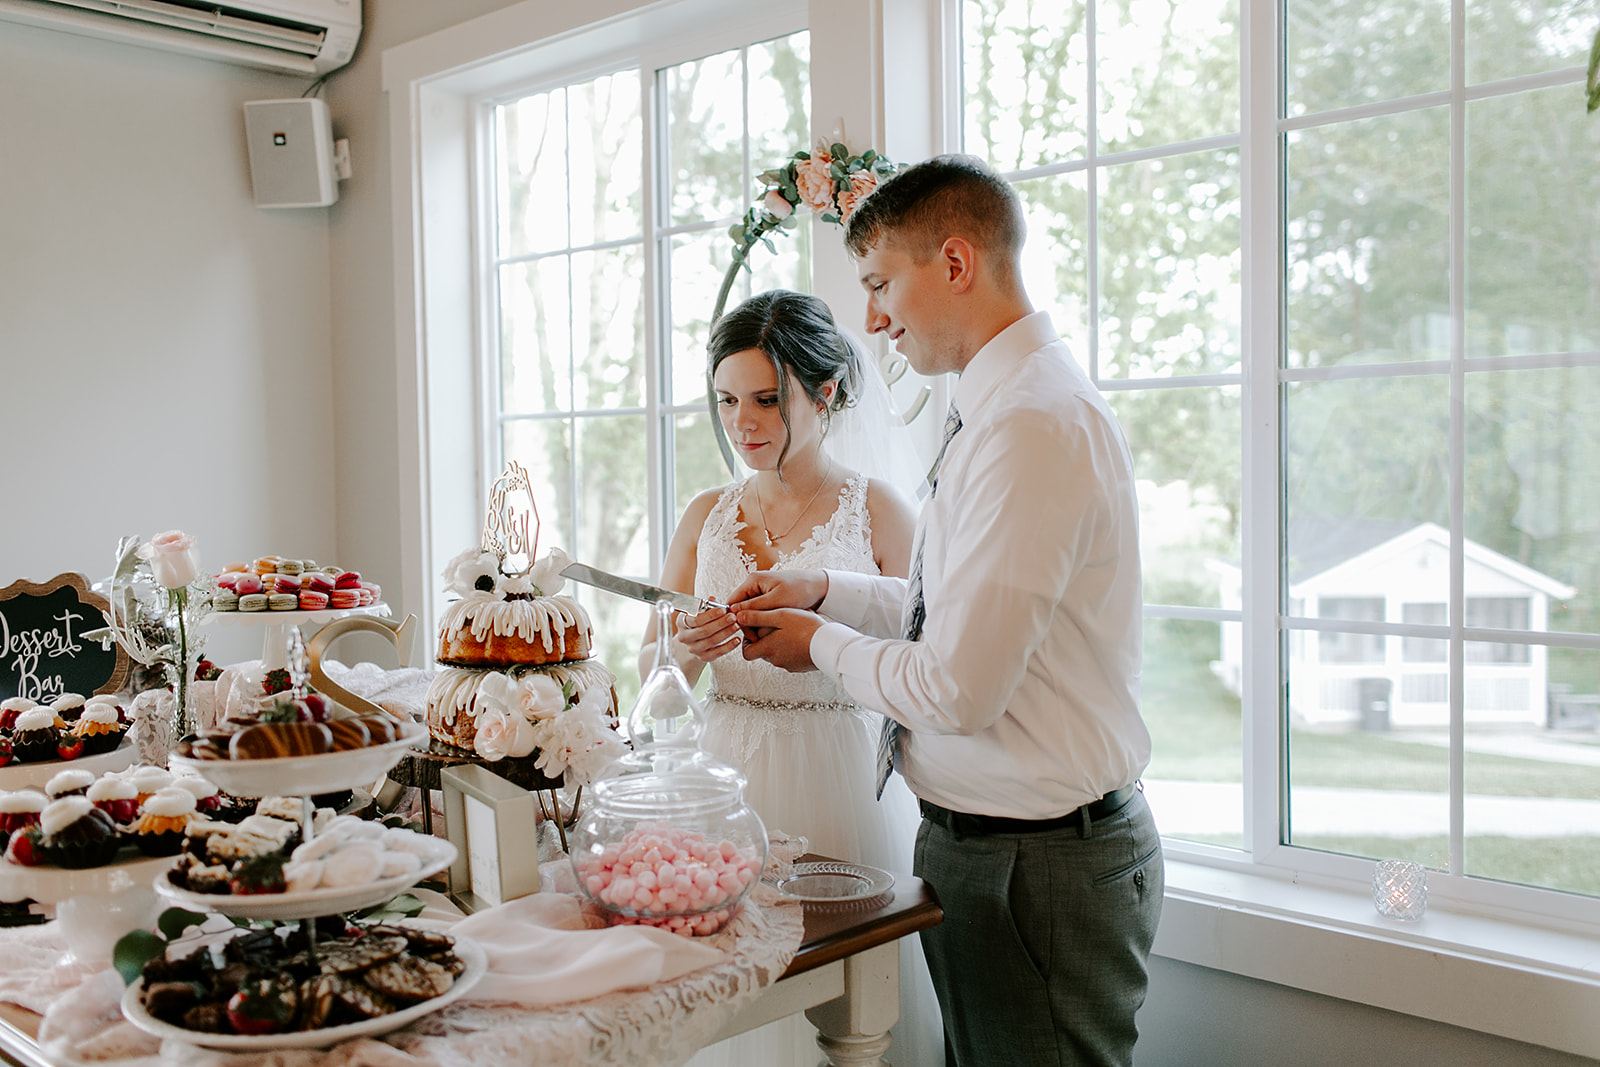 Kendra_and_Mattew_Indiana_Wedding_by_Emily_Wehner-770.jpg